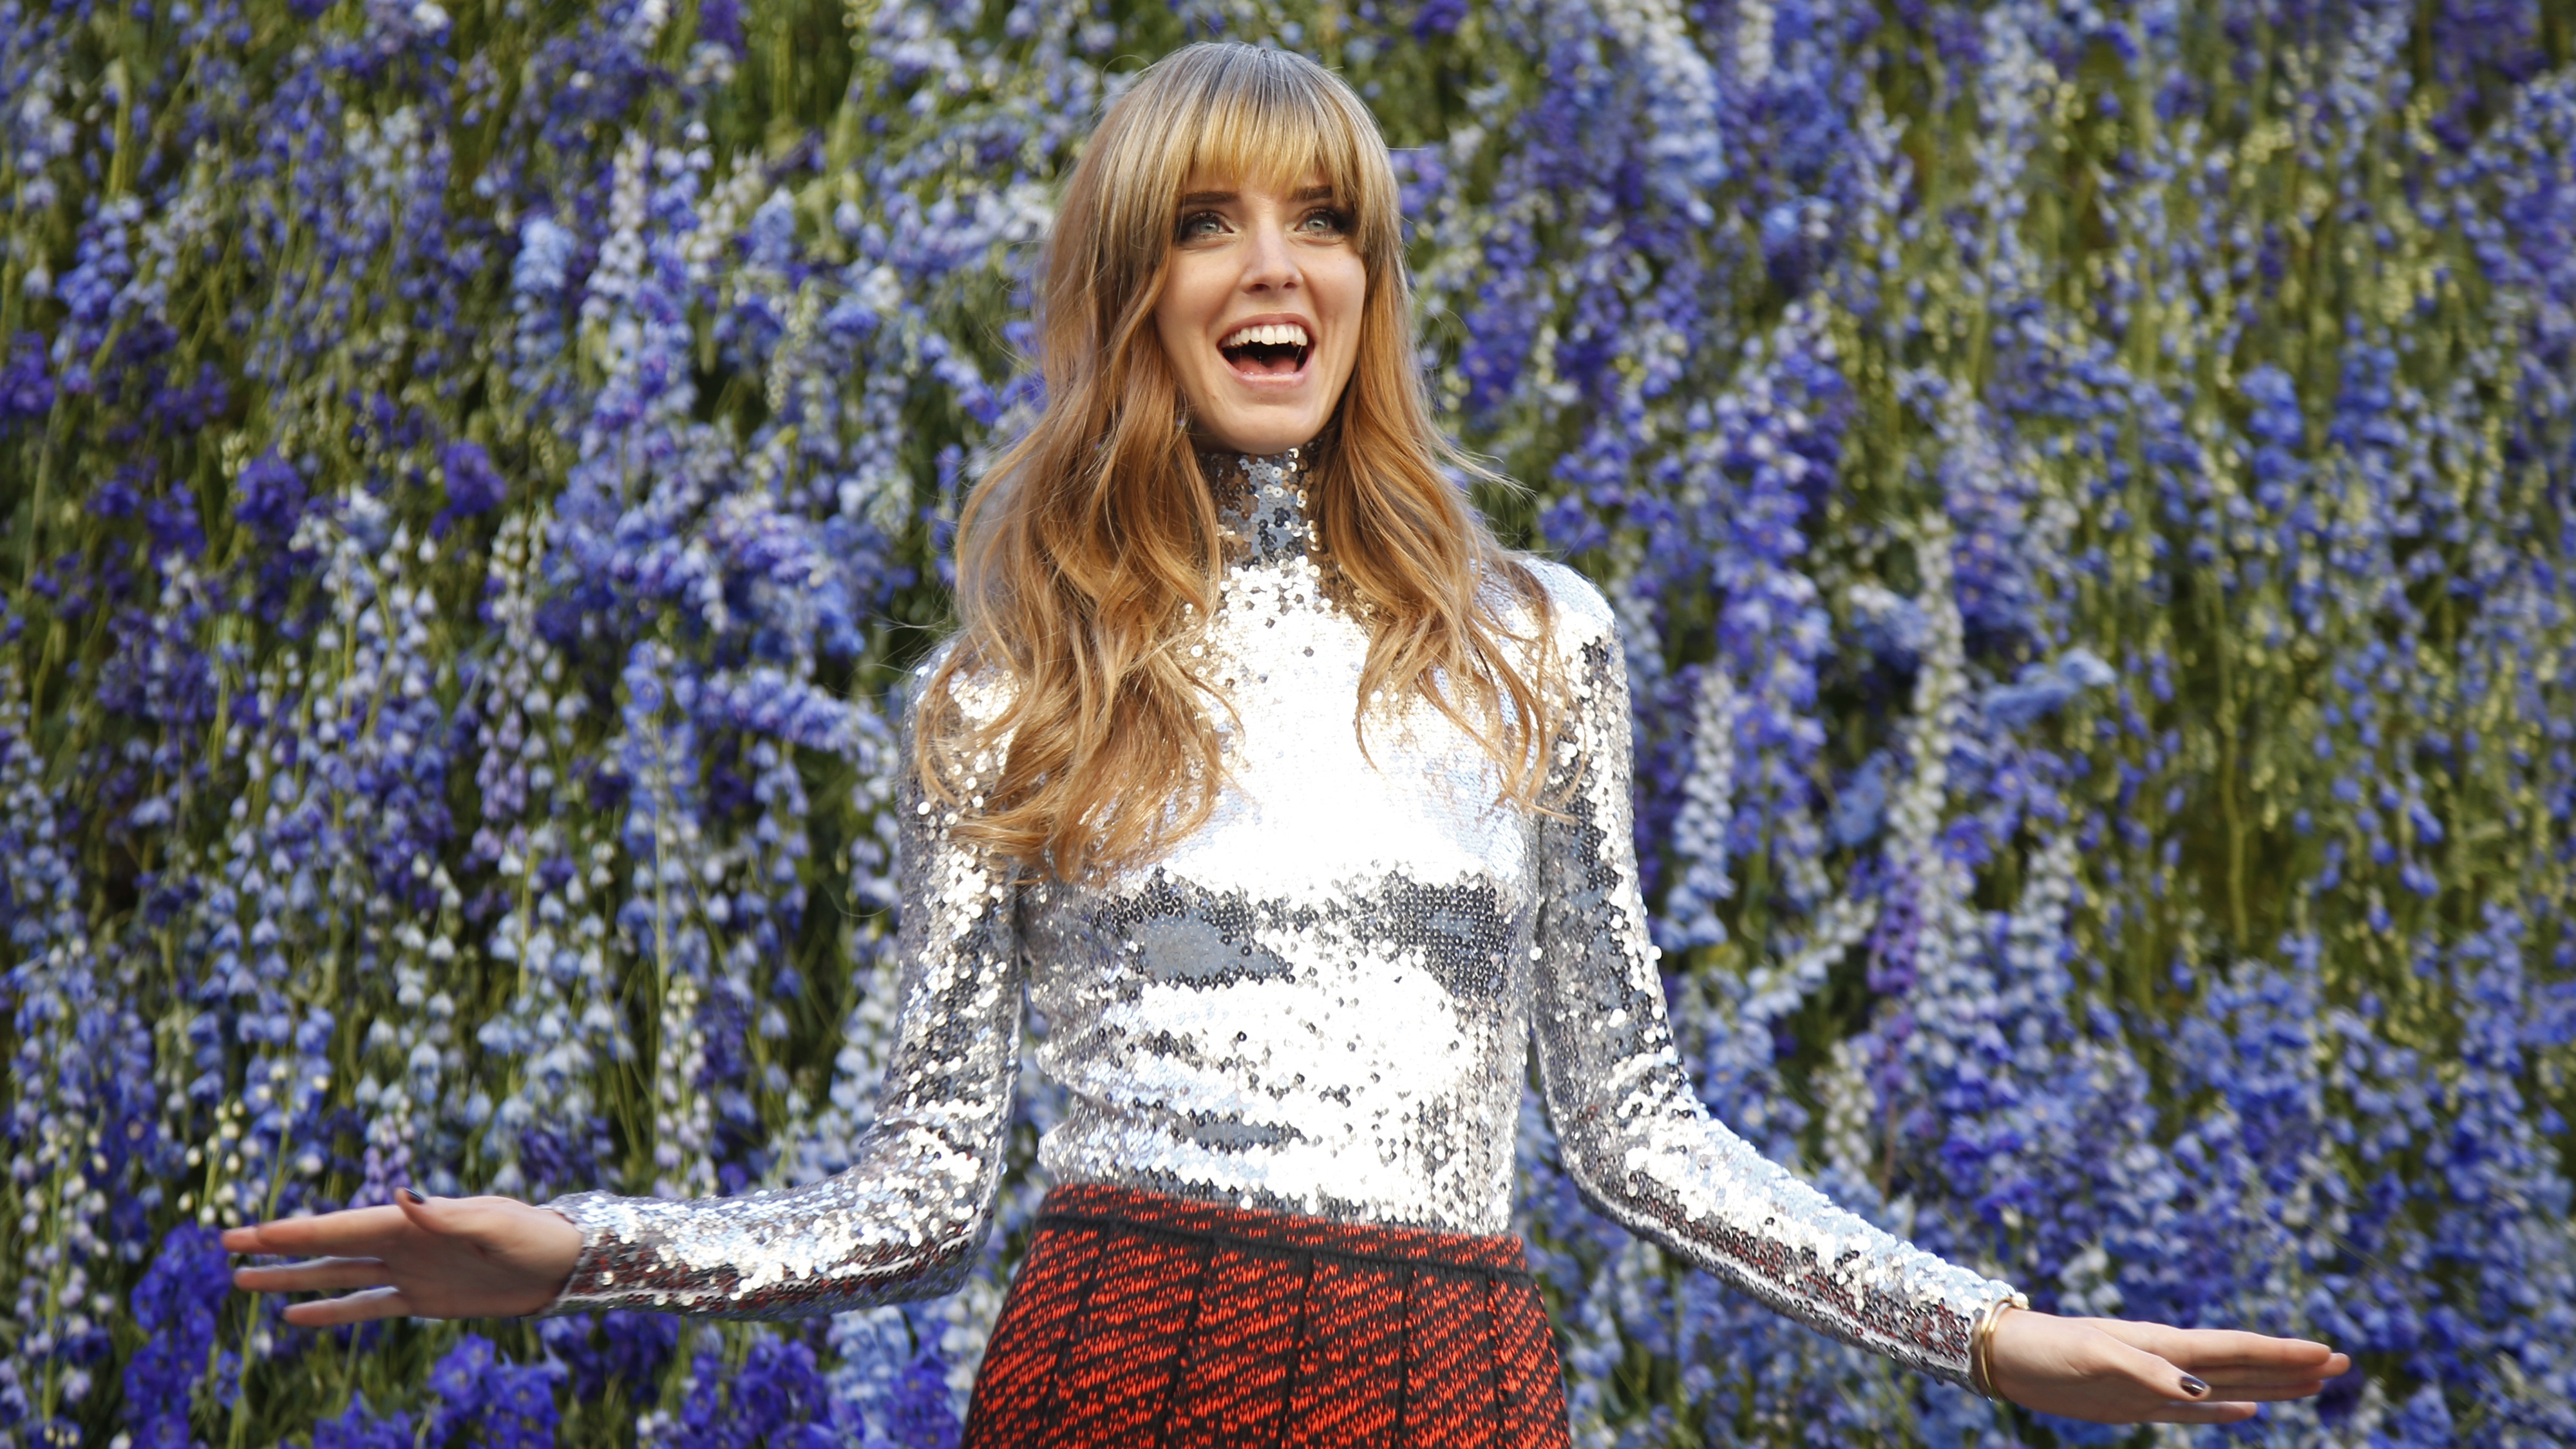 Italian blogger Chiara Ferragni poses before attending the Spring/Summer 2016 women's ready-to-wear collection show for Dior fashion house during the Fashion Week in Paris, France, October 2, 2015. REUTERS/Charles Platiau